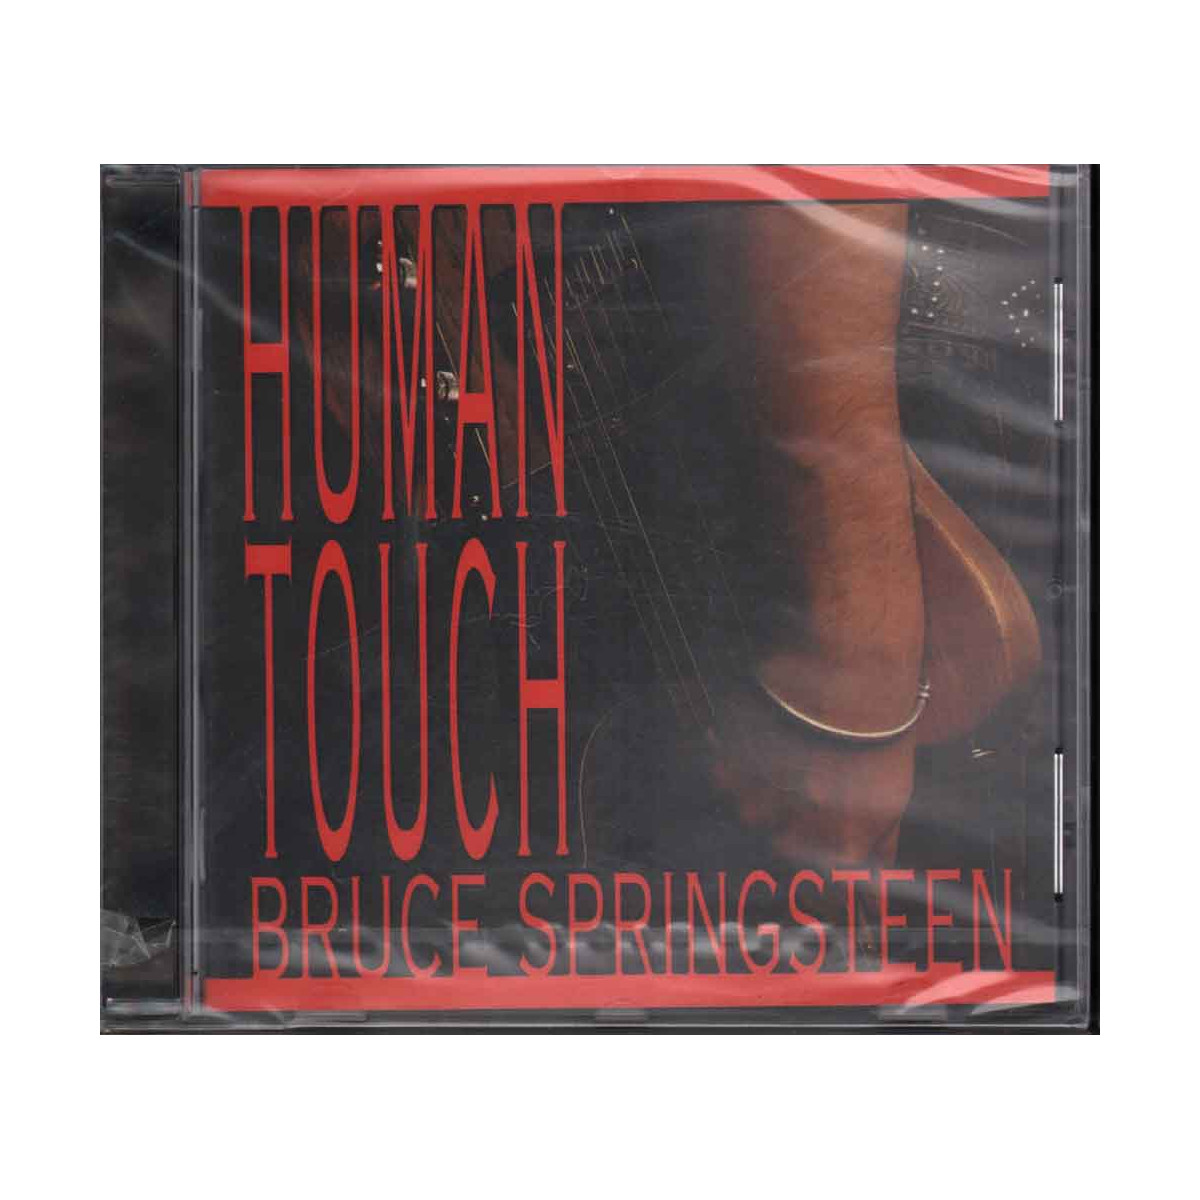 Bruce Springsteen CD Human Touch Nuovo Sigillato 5099747142321